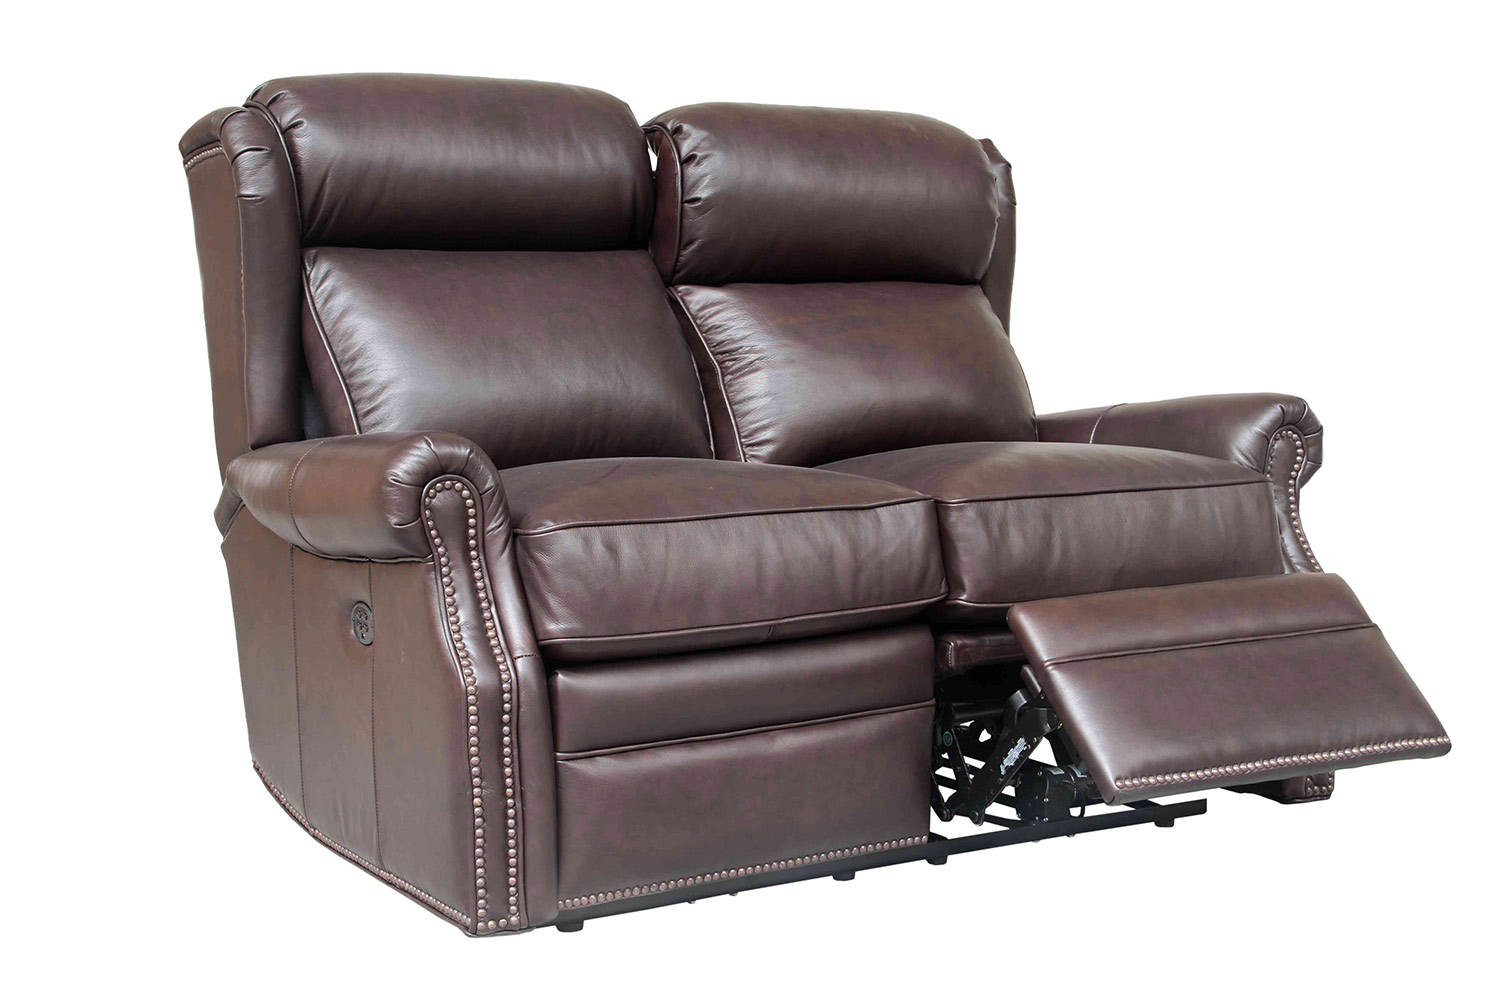 Barcalounger Southington Power Reclining Loveseat with Power Head Rests - Shoreham Dark Umber/All Leather